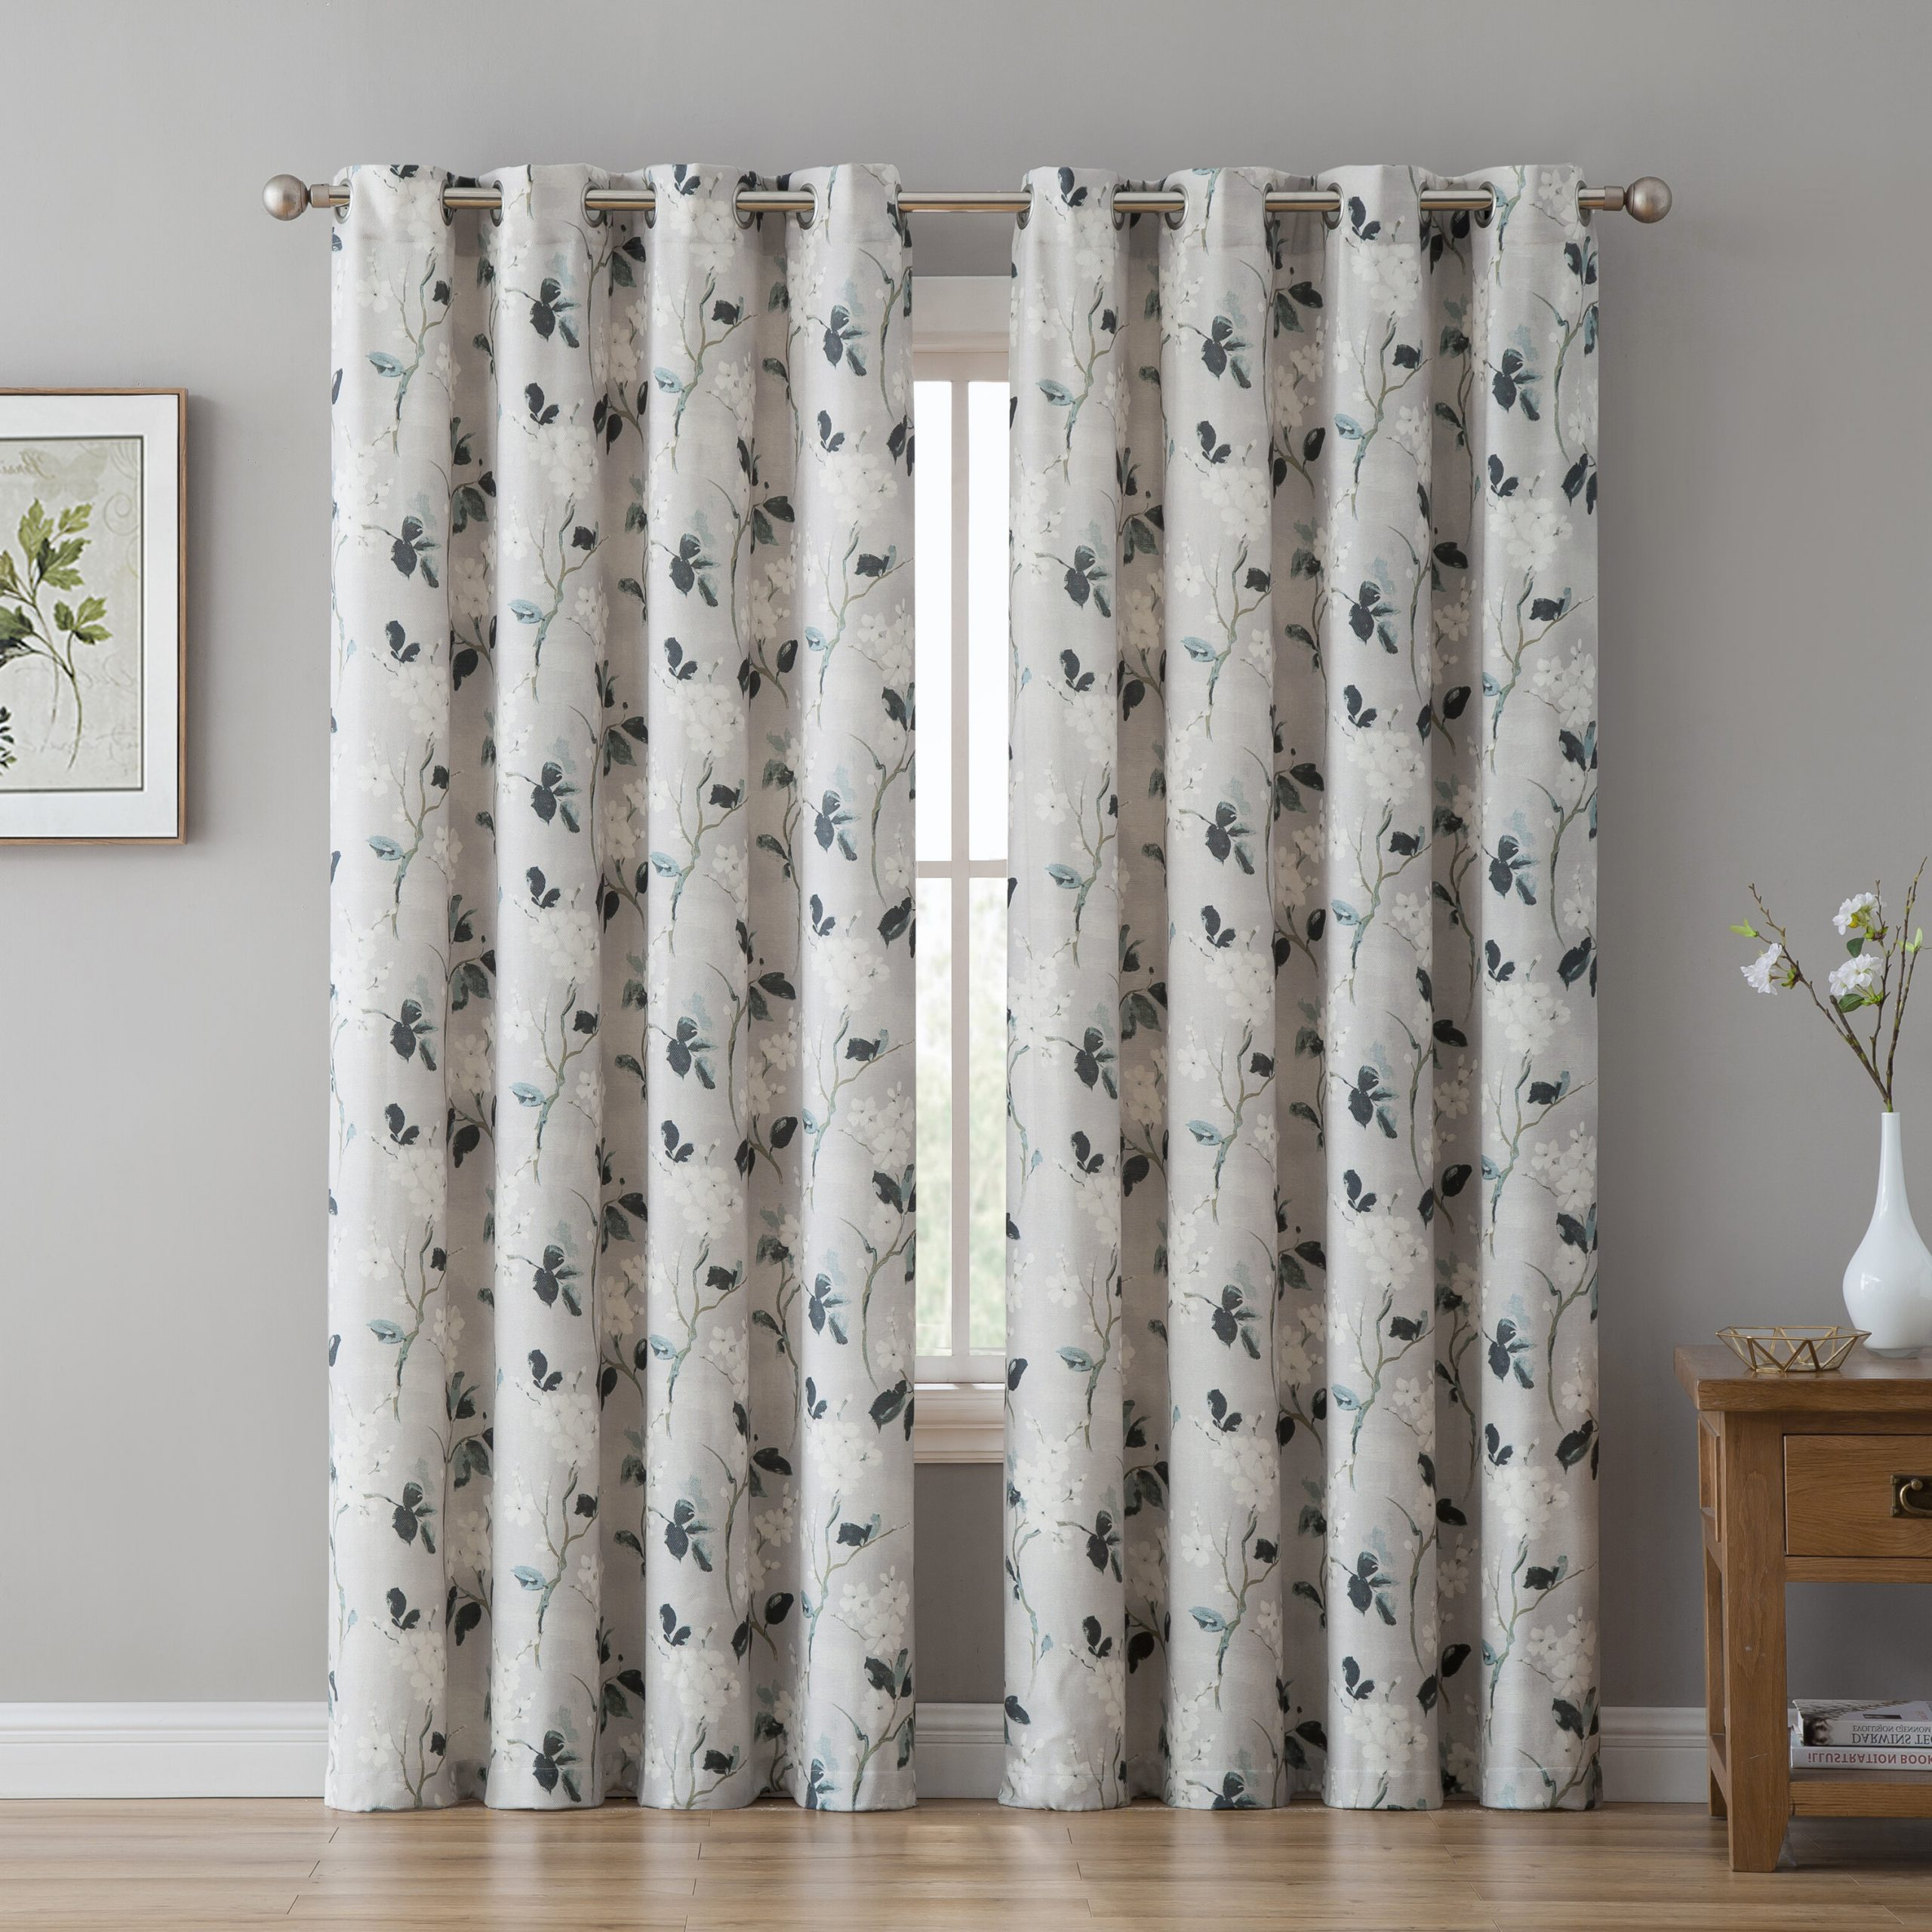 Liliana Floral/flower Room Darkening Grommet Curtain Panels In Popular Cyrus Thermal Blackout Back Tab Curtain Panels (View 16 of 20)